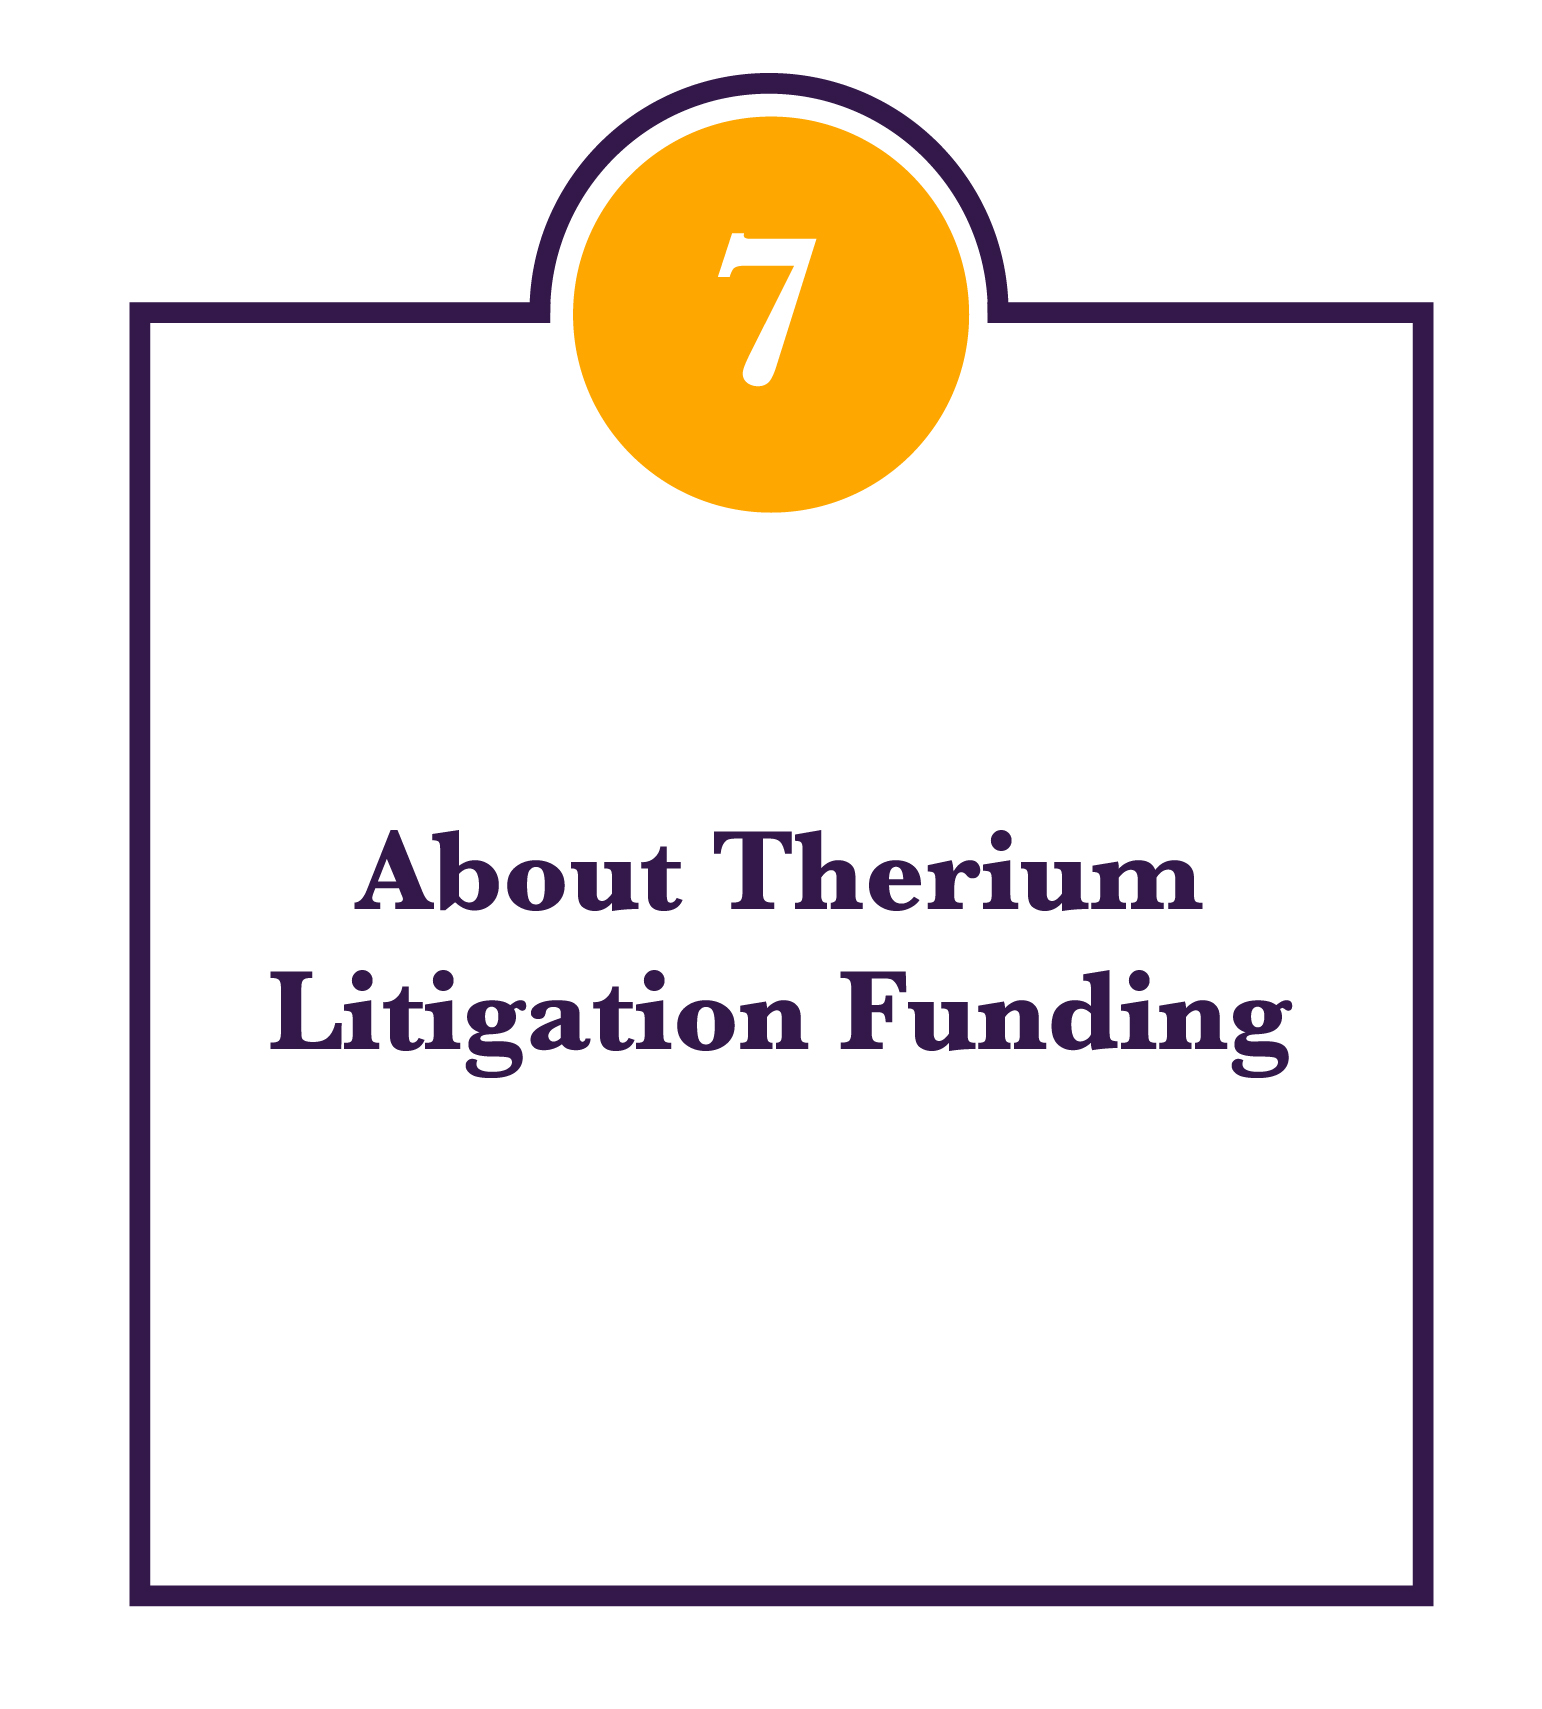 About-Therium-litigation-funding